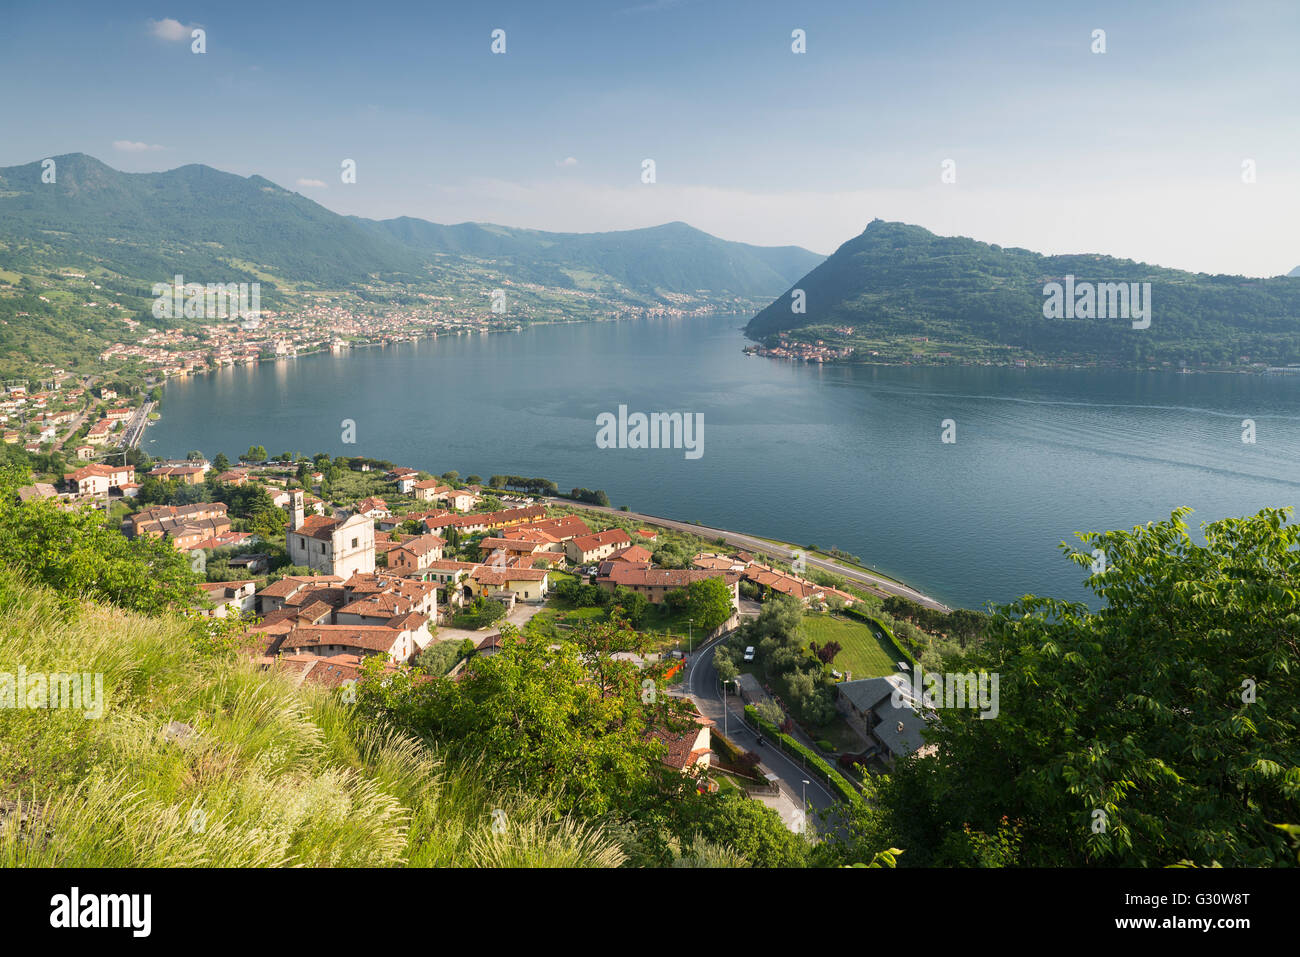 Viewpoint at Saint Peter Church in Marone overlooking the panorama of Lake Iseo and Monte Isola island in afternoon - Stock Image